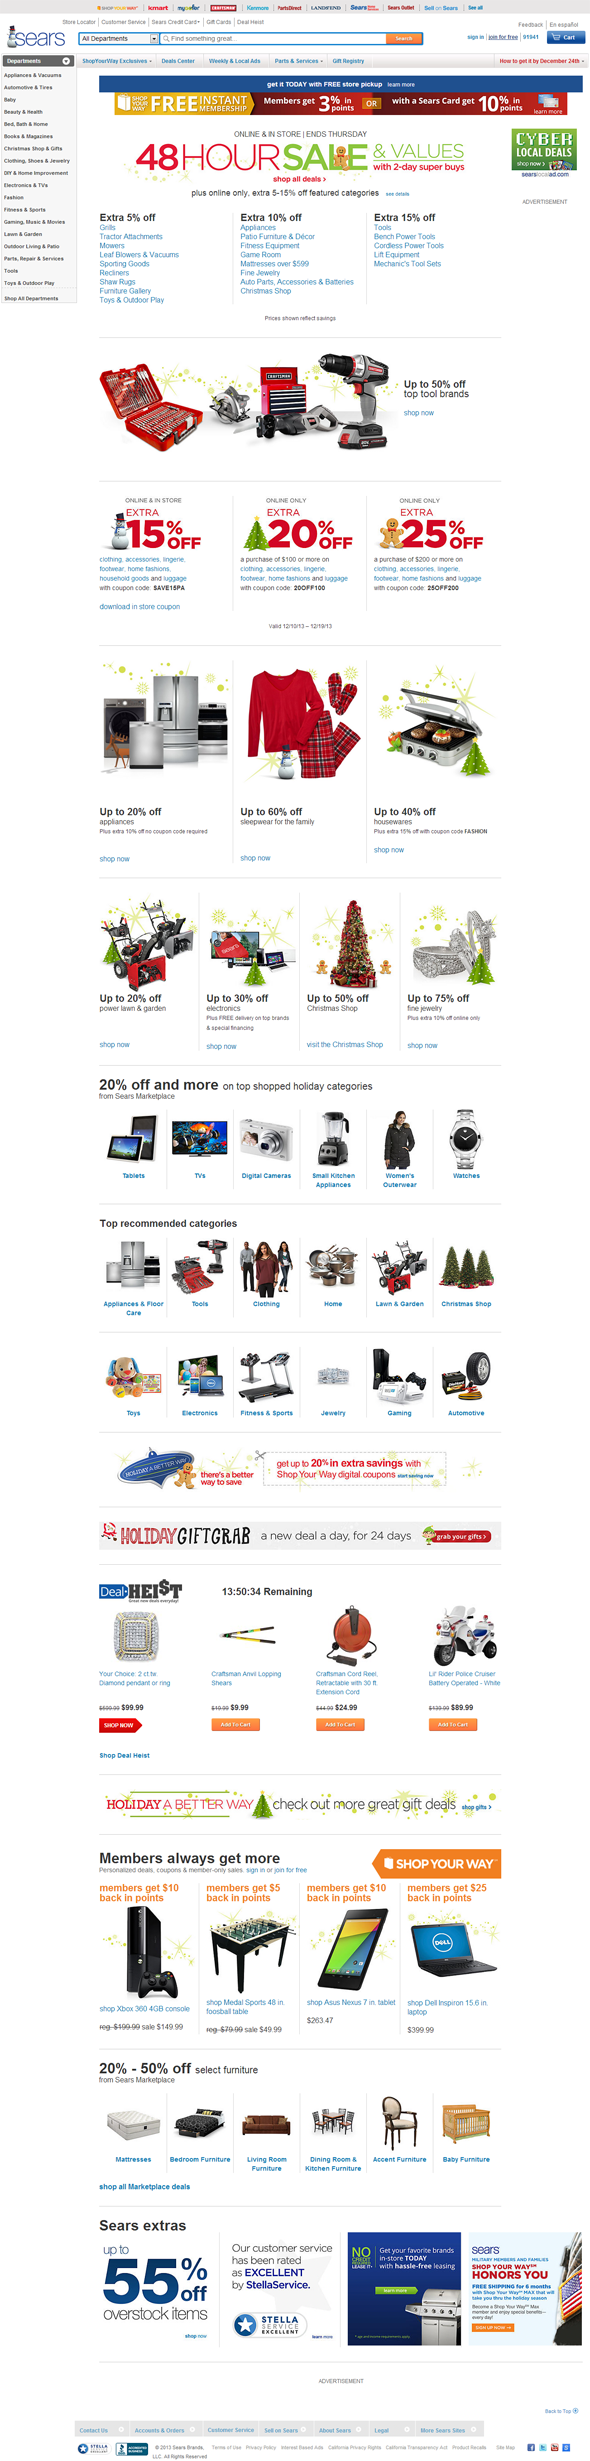 Sears---Online---In-Store-Shopping--Appliances--Clothing---More